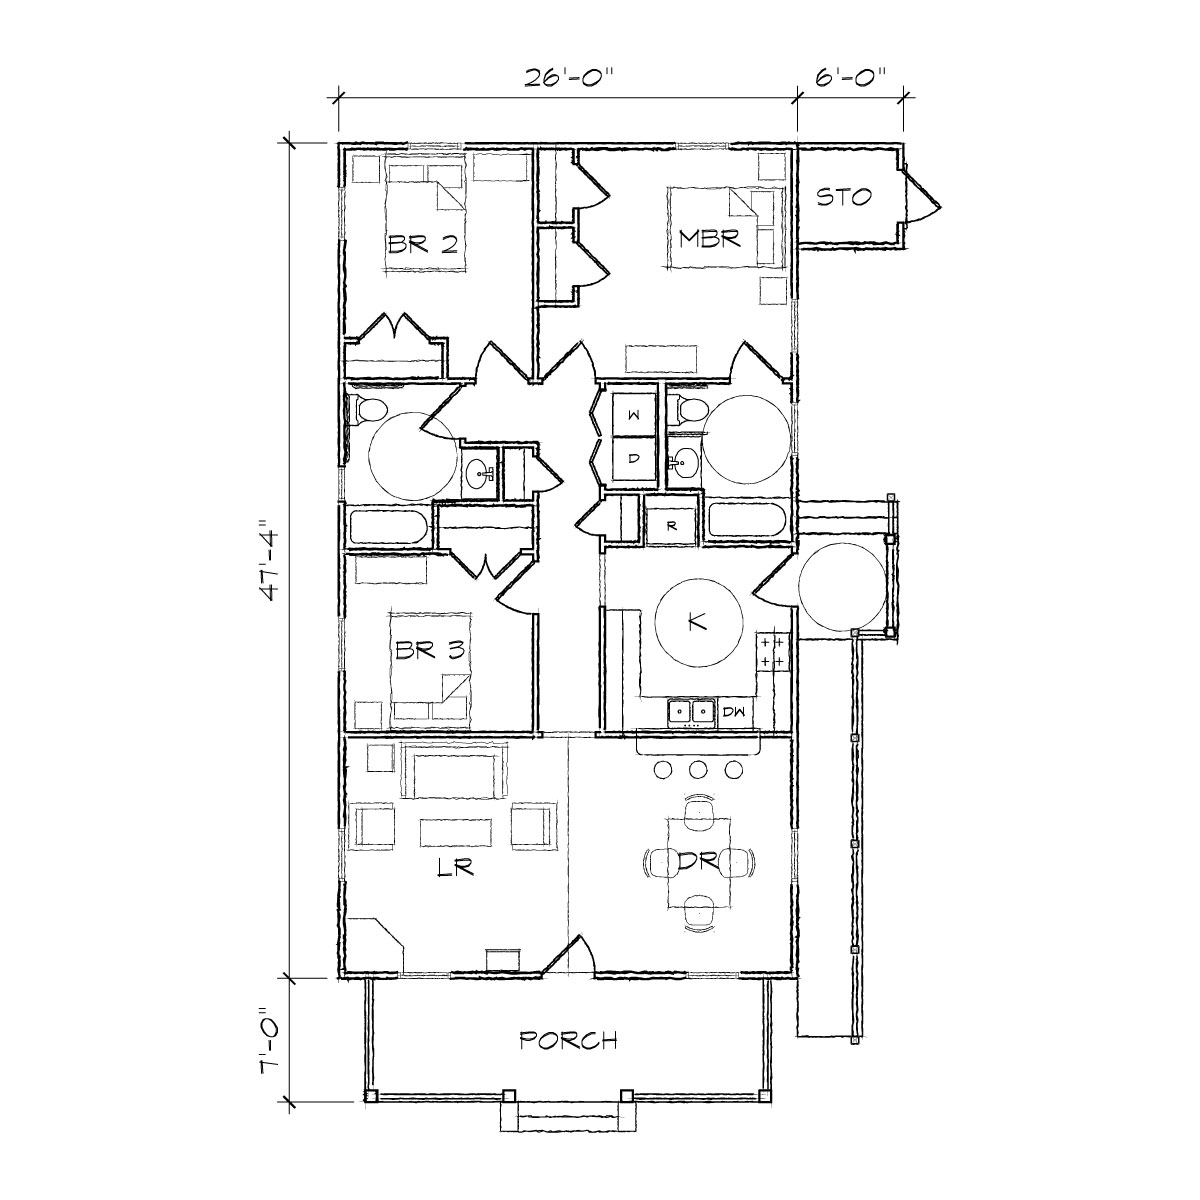 2 Bedroom Bungalow Plans Bungalow Floor Plan Floor Plan